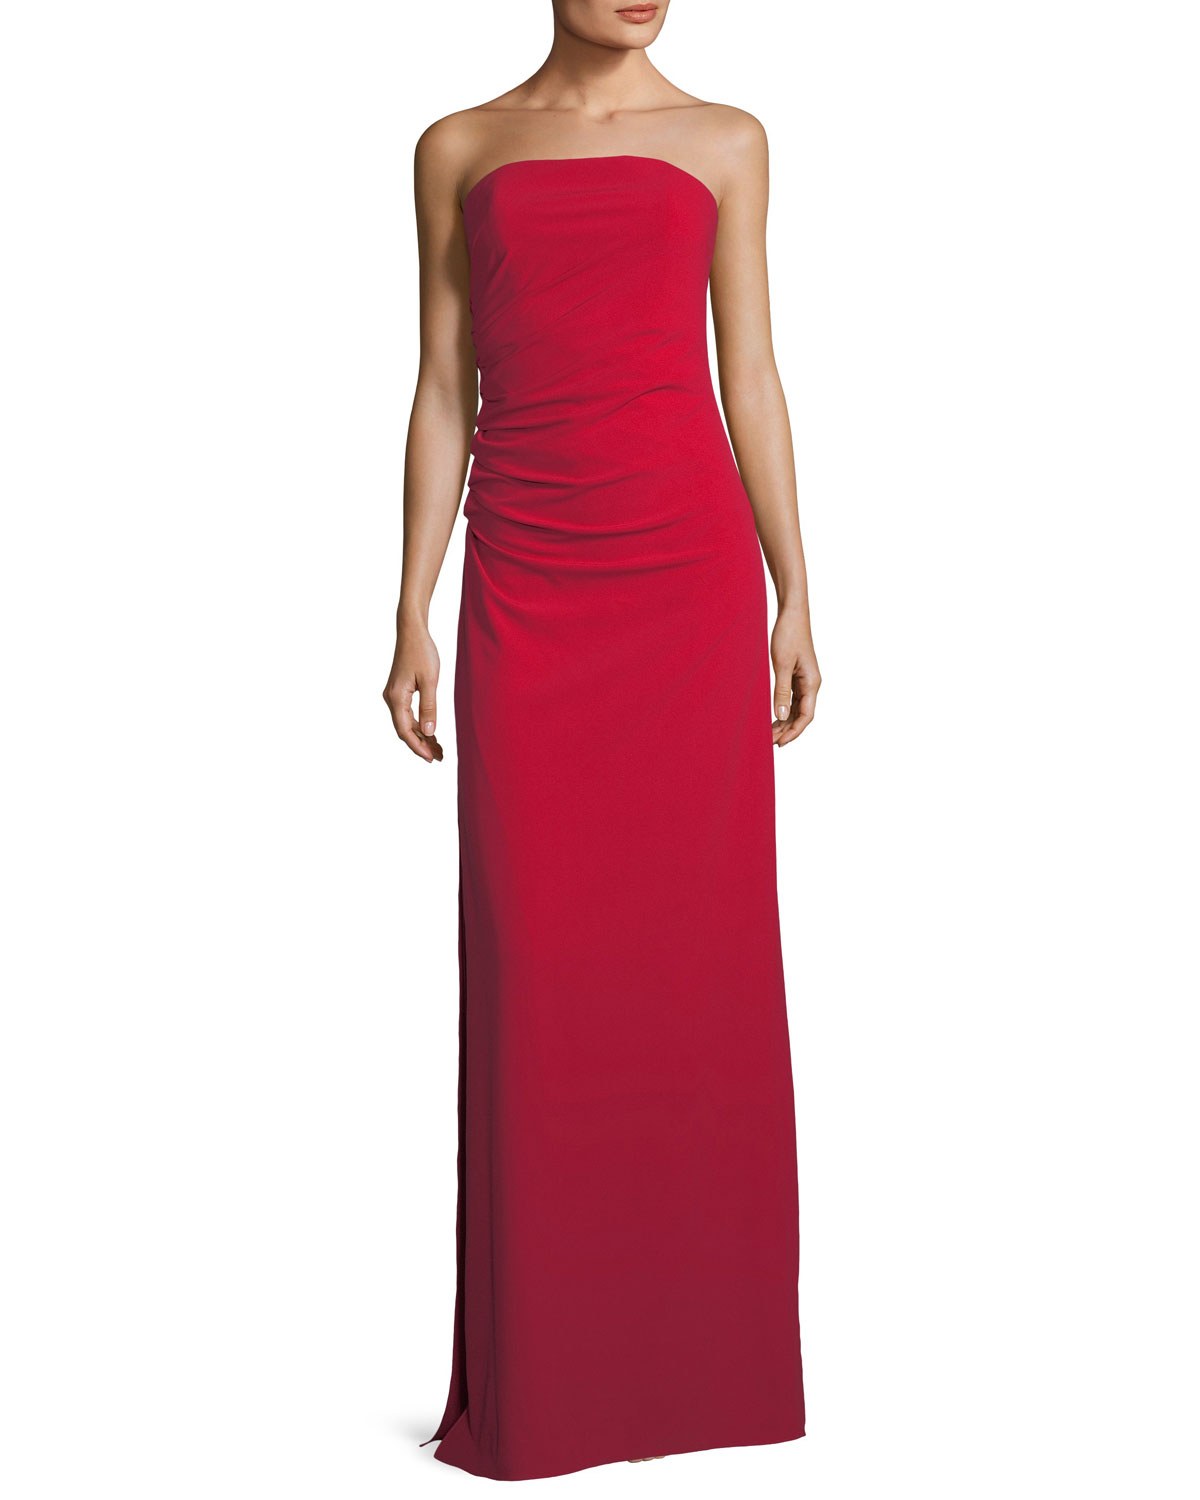 Ruched Bodice Gown | Neiman Marcus